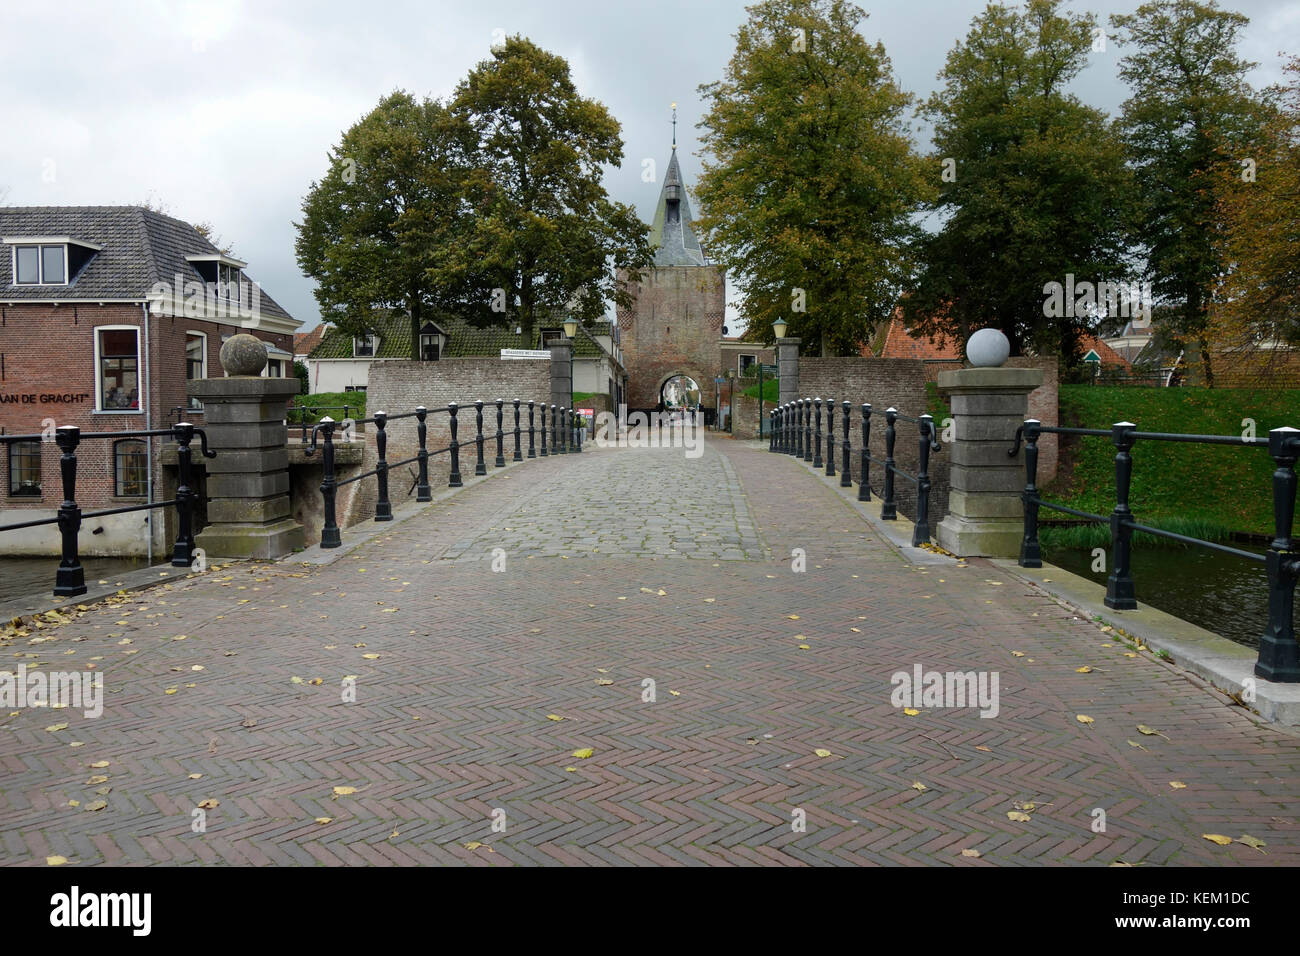 Main street, city gate and historic buildings of Elburg, an old Hanseatic city in the province Gelderland in the - Stock Image